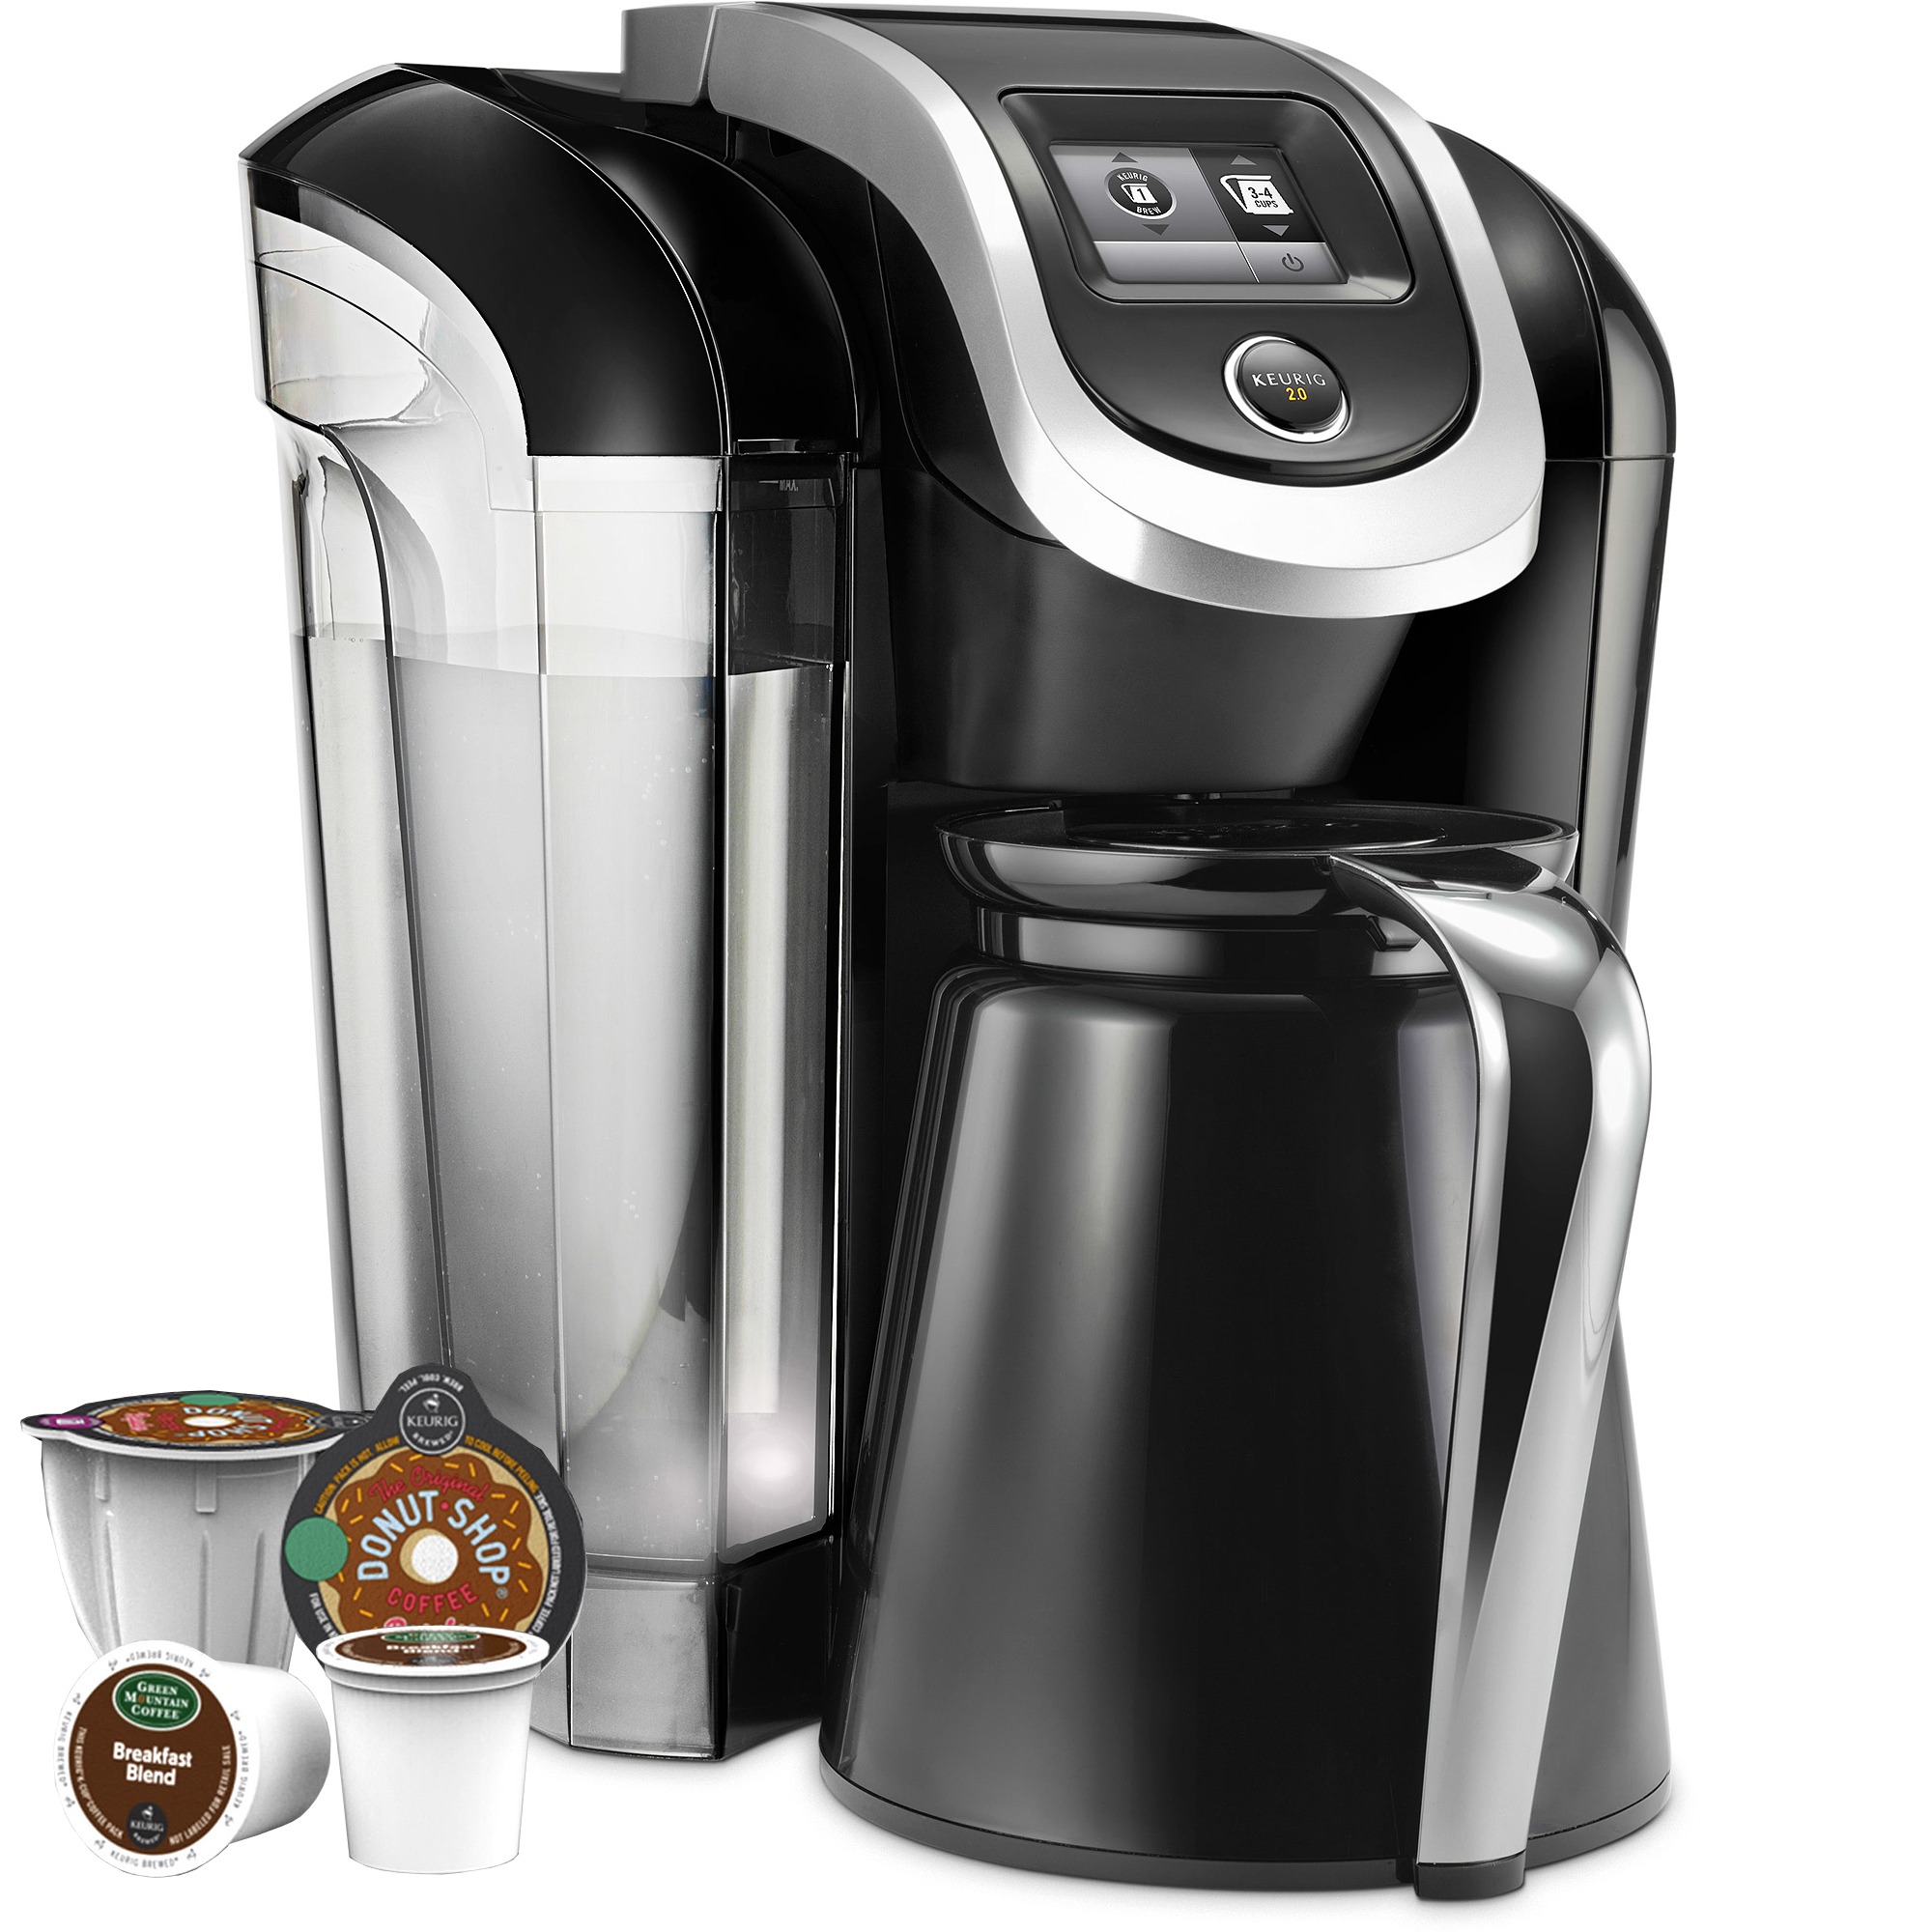 Keurig k300 2 0 coffee maker brewing system with carafe Coffee maker brands